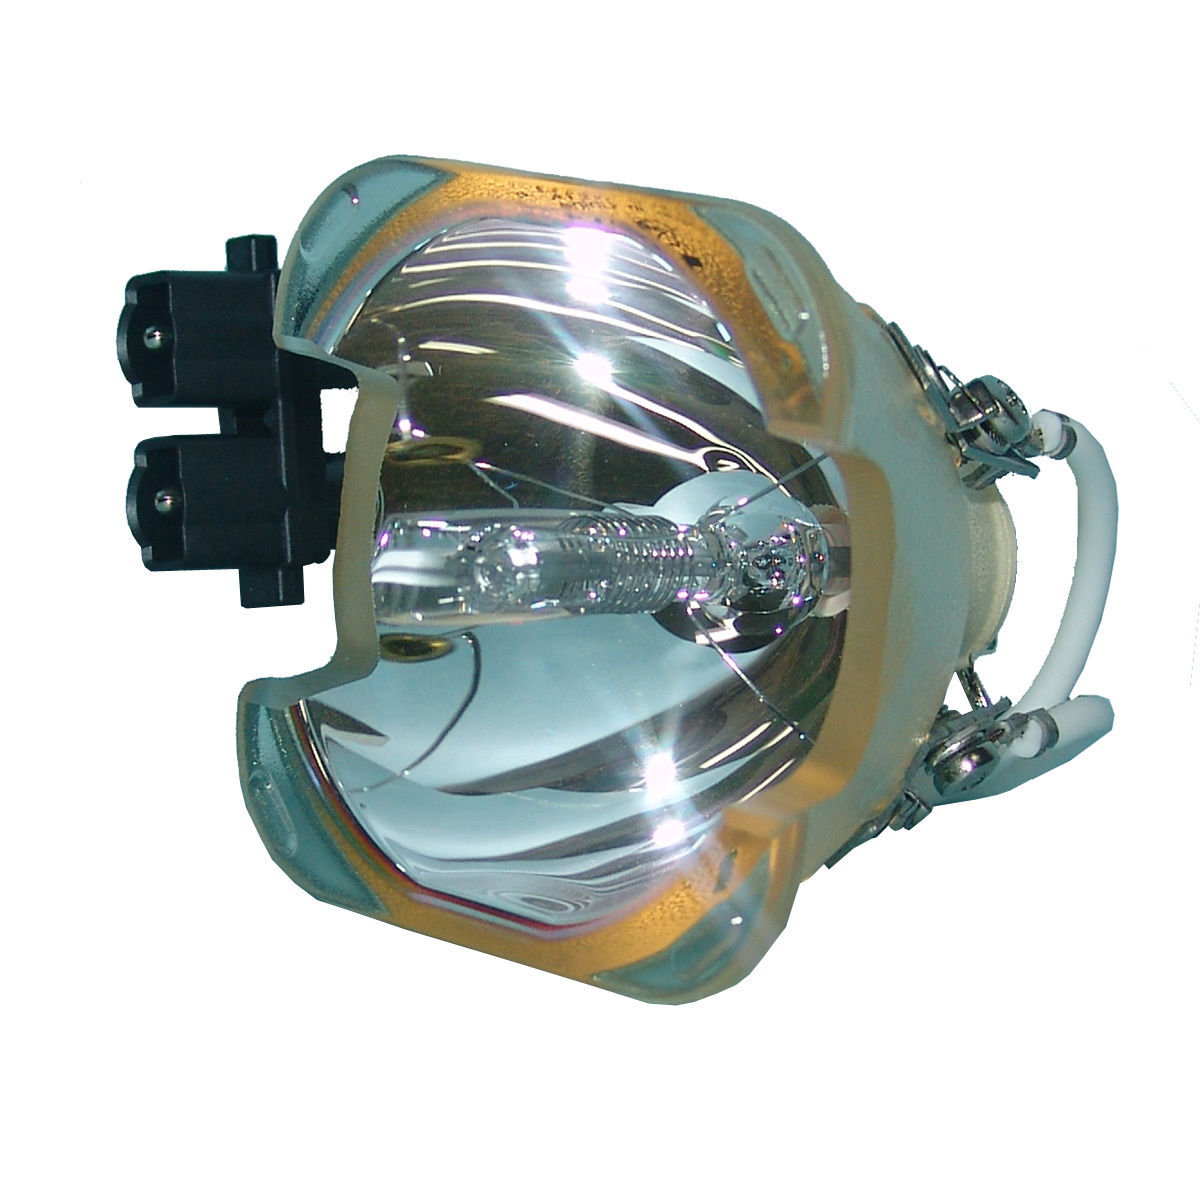 Compatible Bare Bulb BL-FU250B BLFU250B SP.86501.001 for Optoma EP756 / EP757 / H65A Projector Lamp Bulb without housing compatible bare bulb for optoma bl fu180b projector lamp